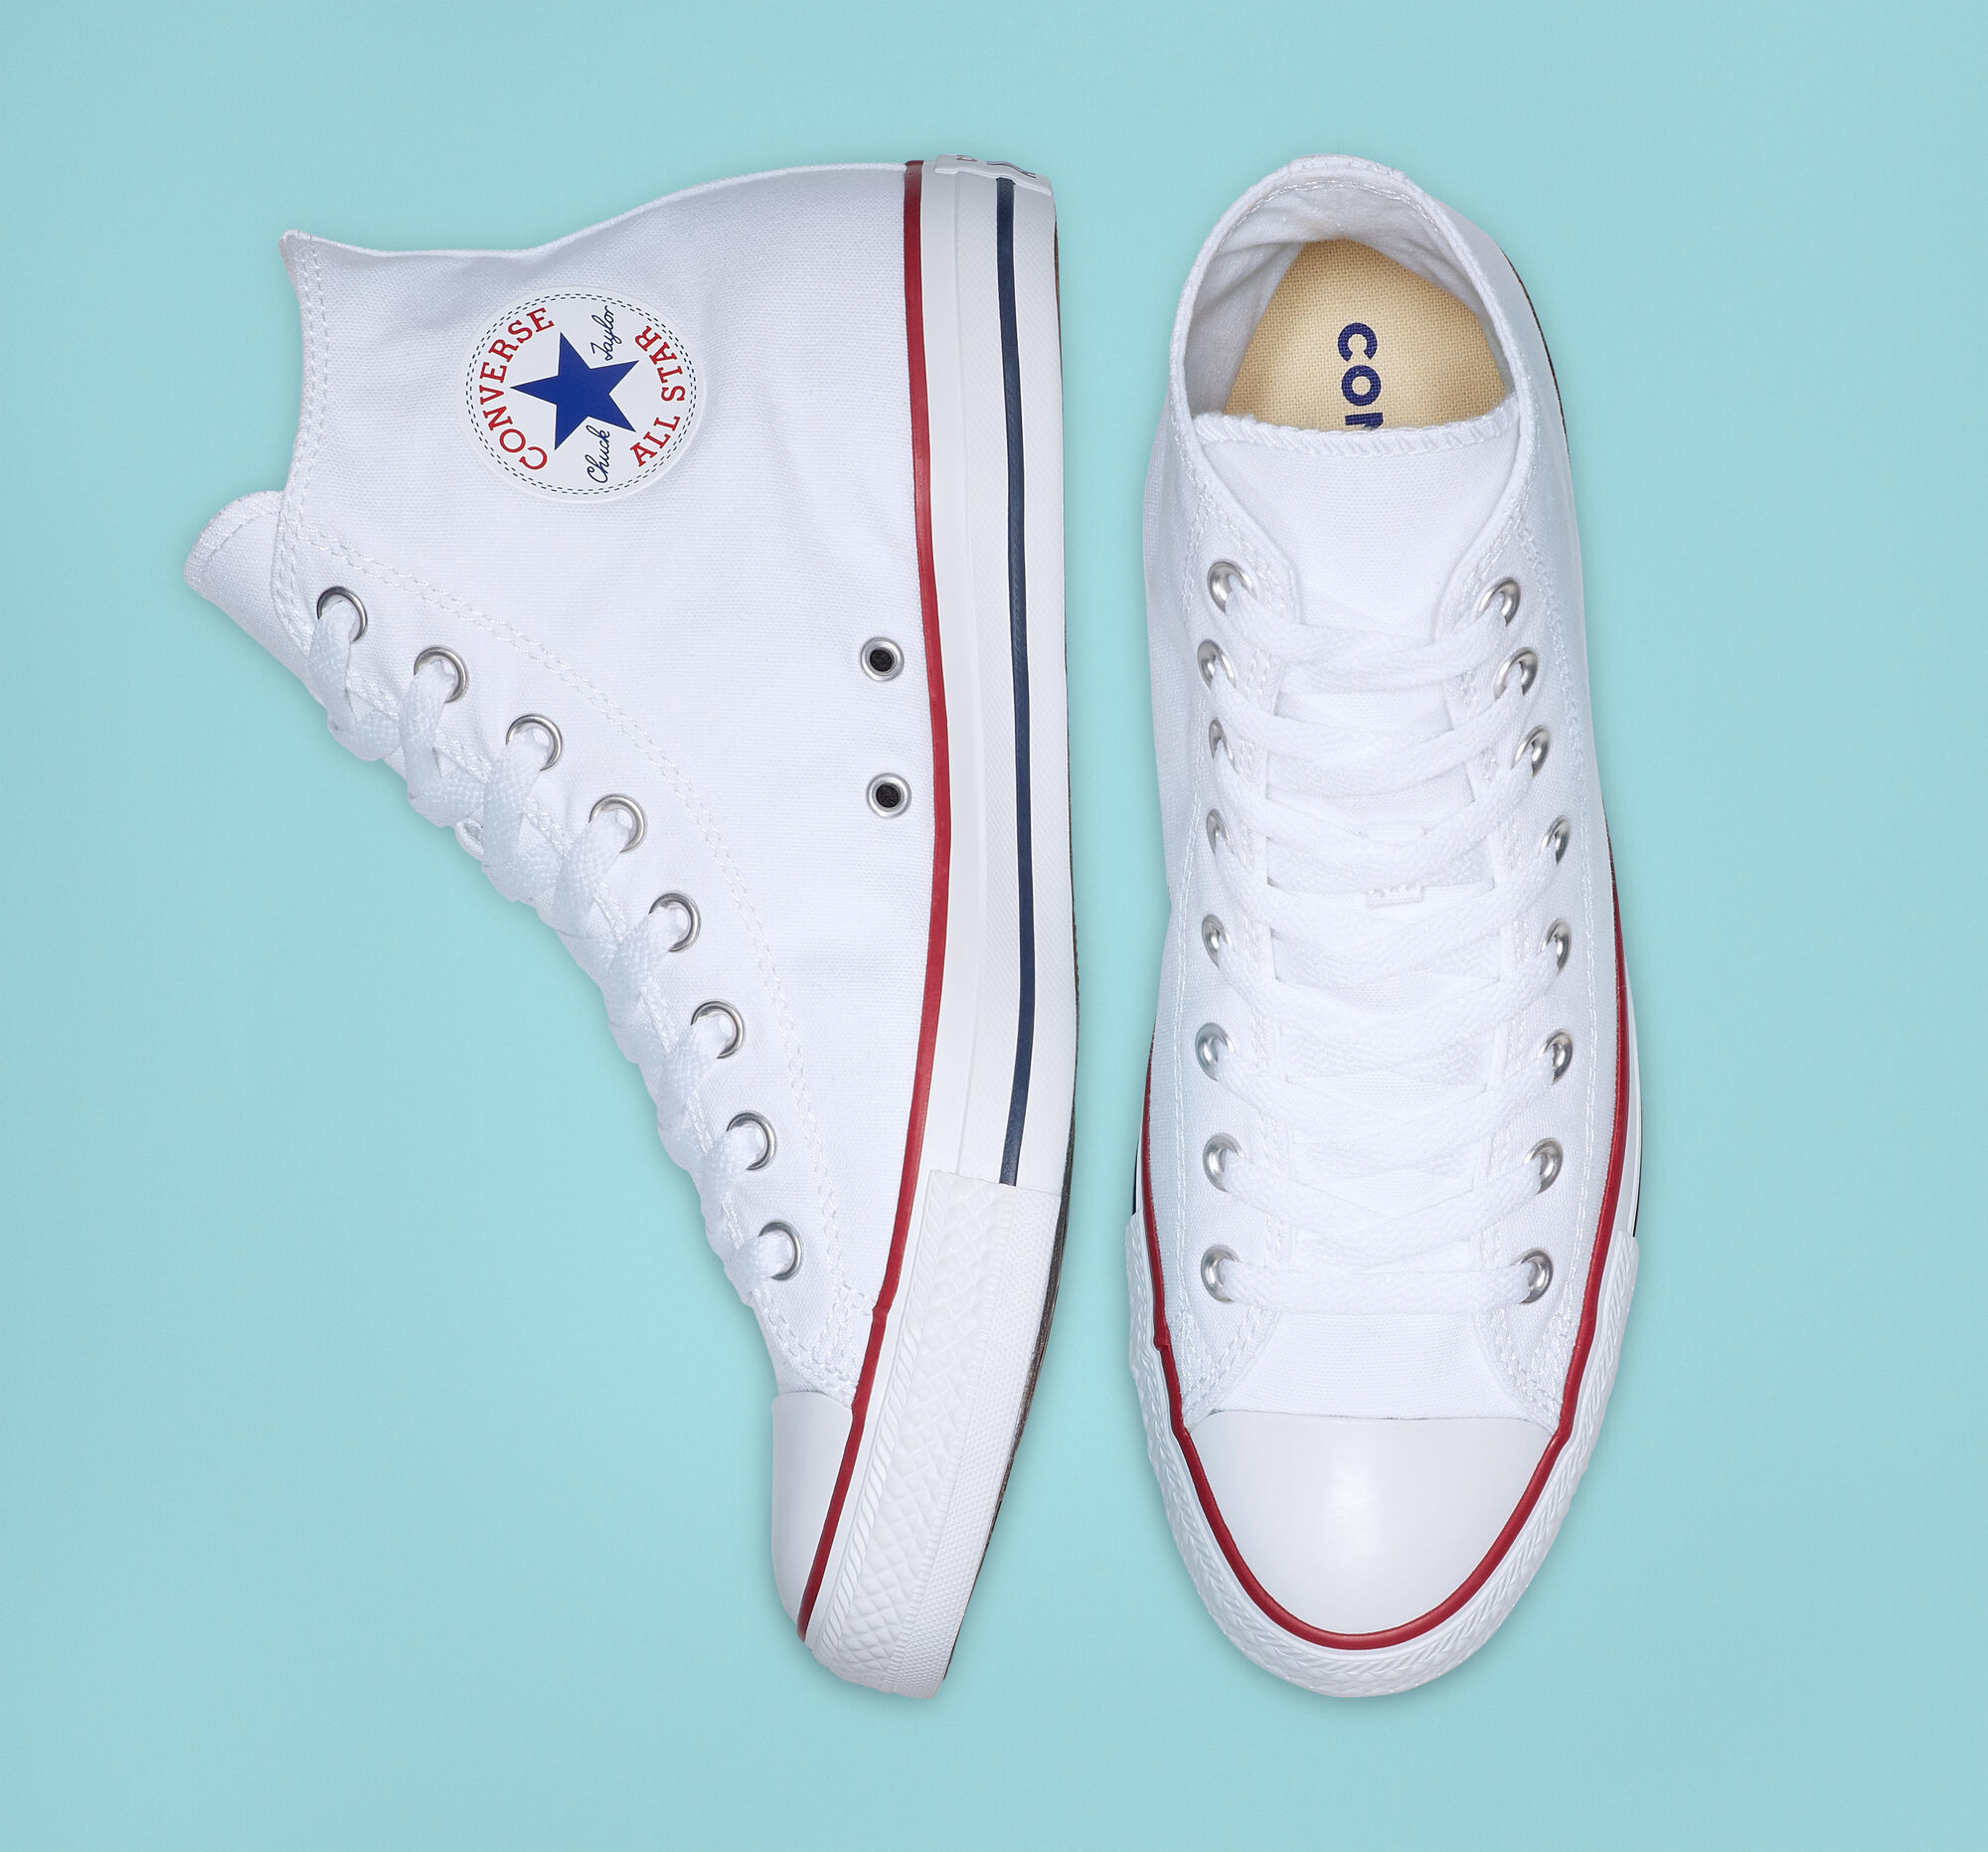 Converse All Star Hight White